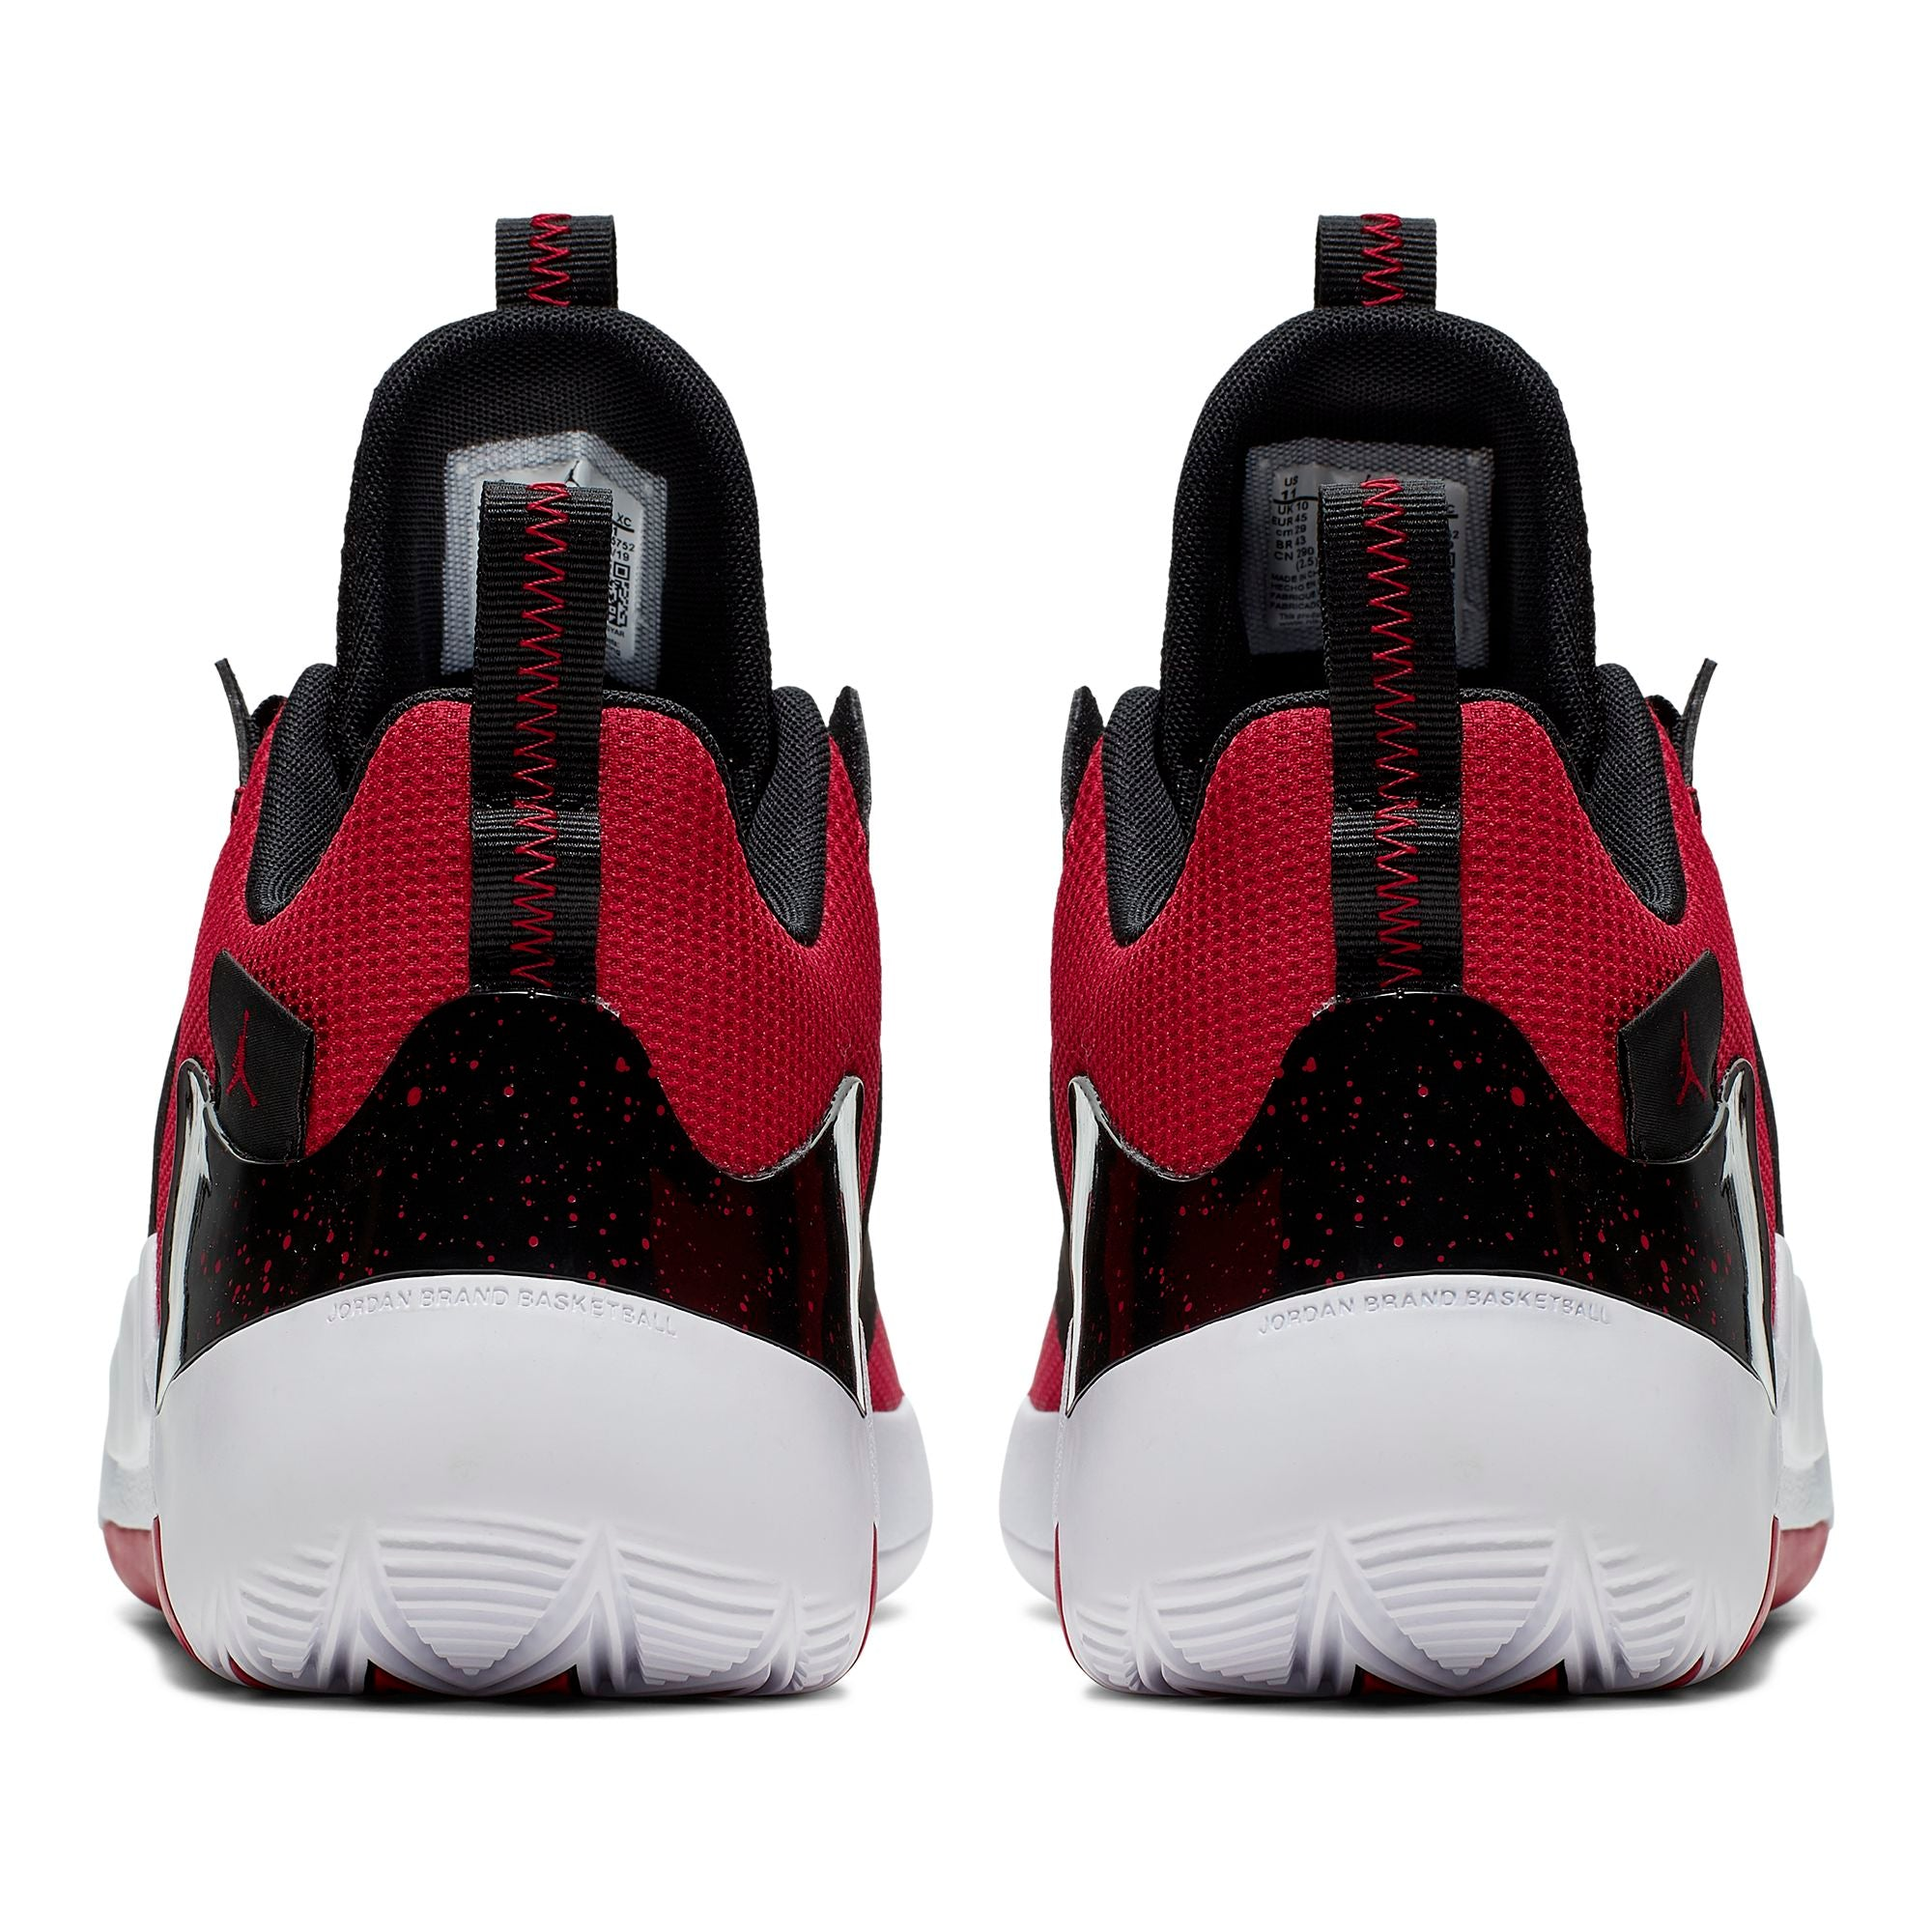 Nike Jordan Zoom Zero Gravity Basketball Boot/Shoe - Gym Red/Black